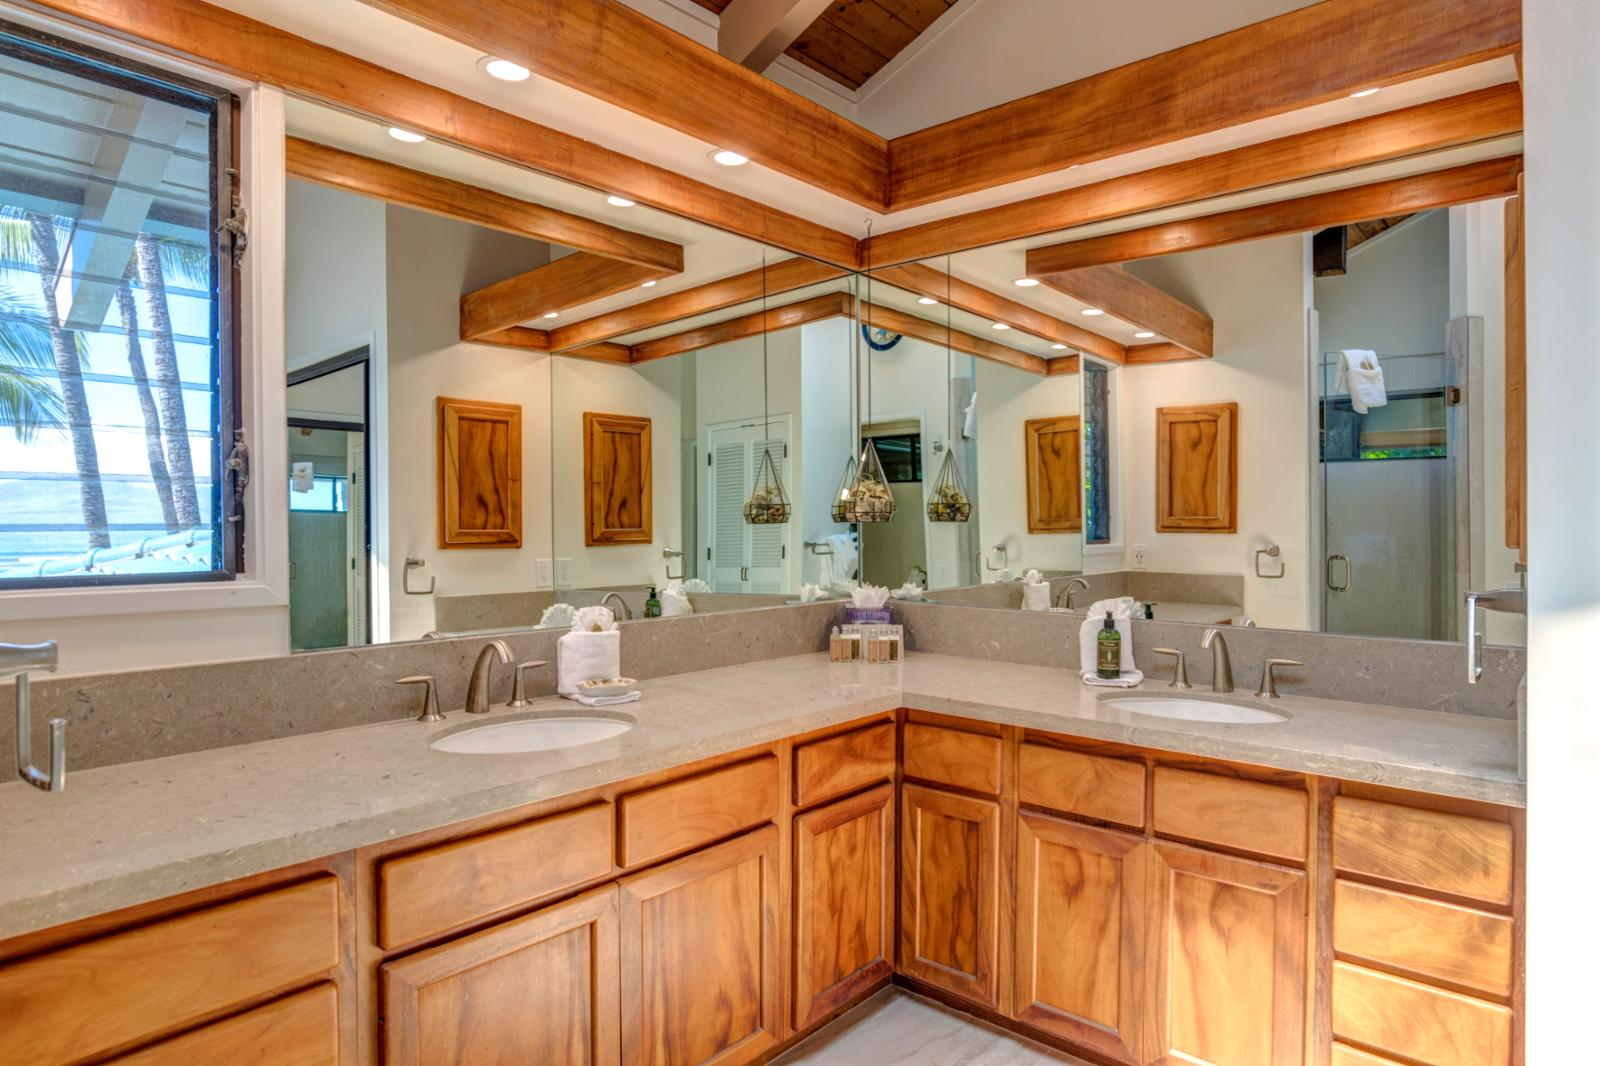 Custom dual sinks and ocean views from your master bath suite